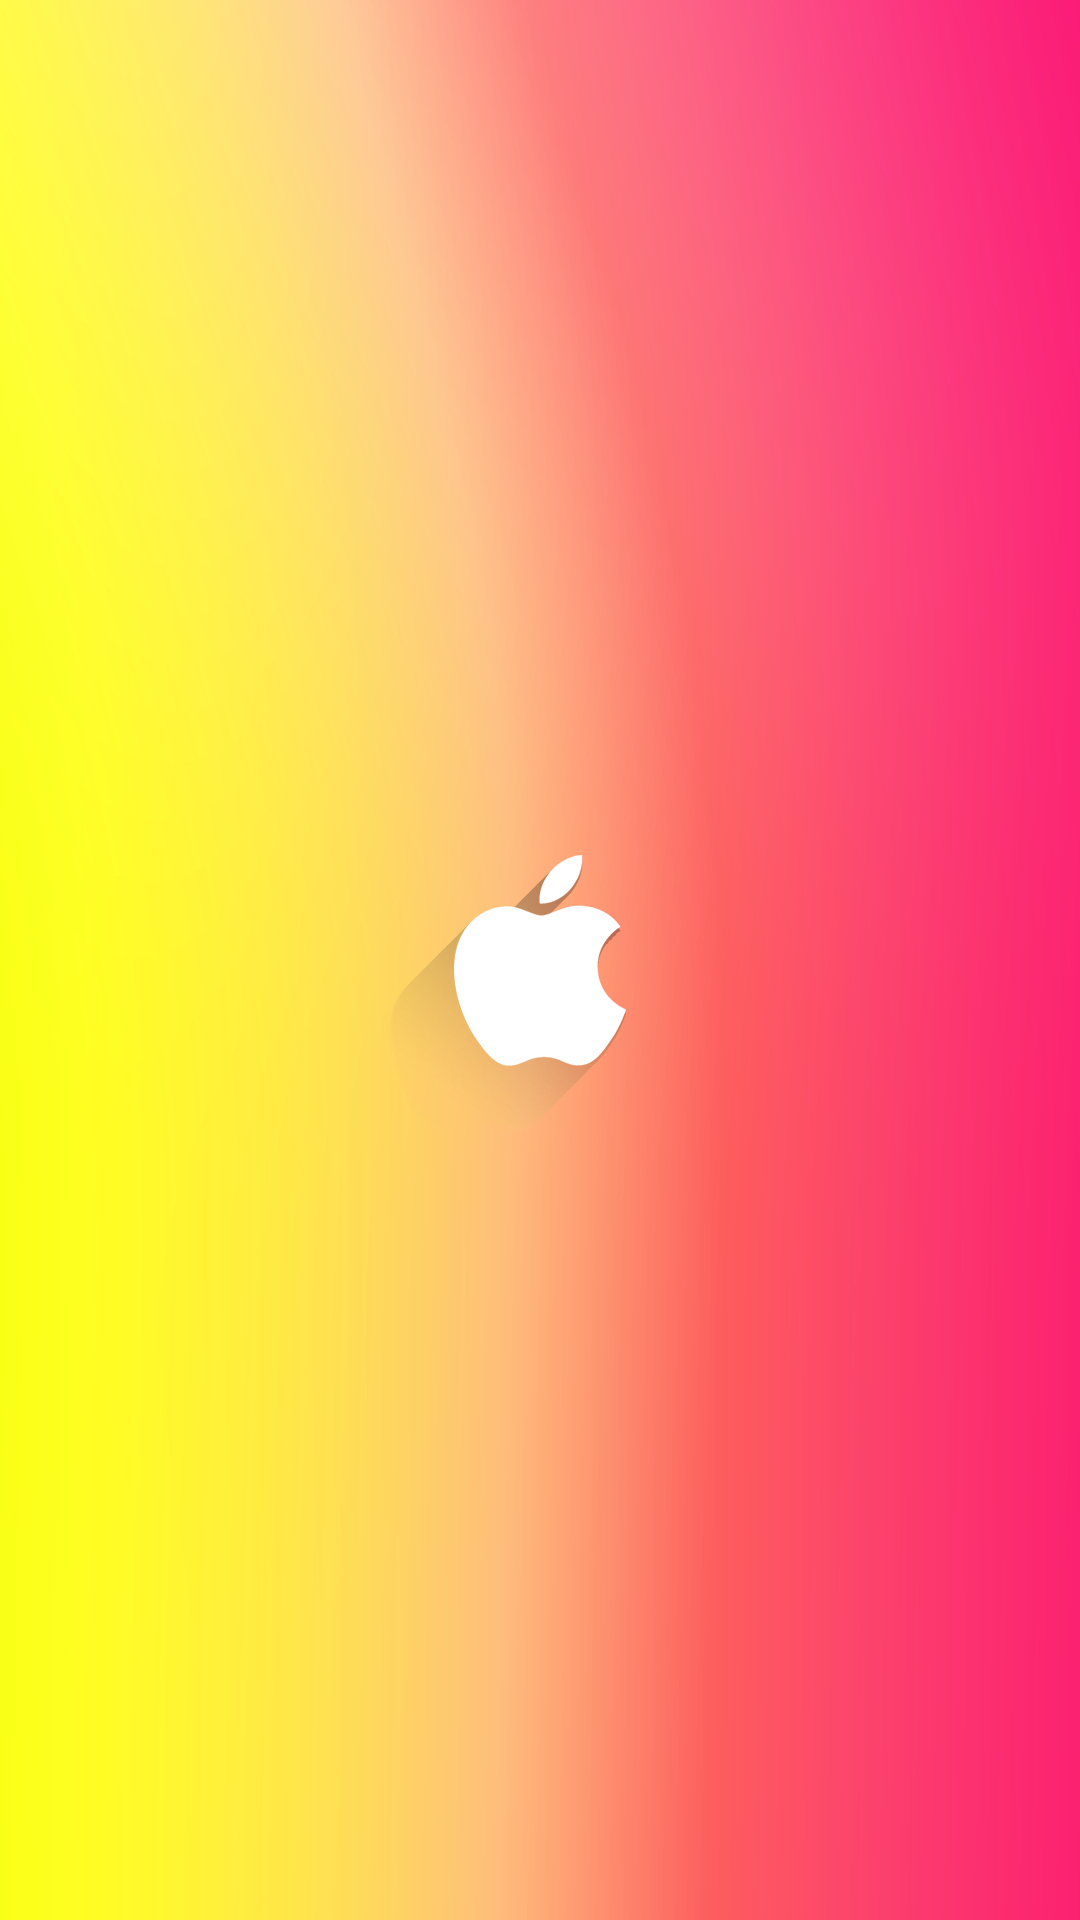 iPhone wallpaper apple logo yellow pink Apple Logo